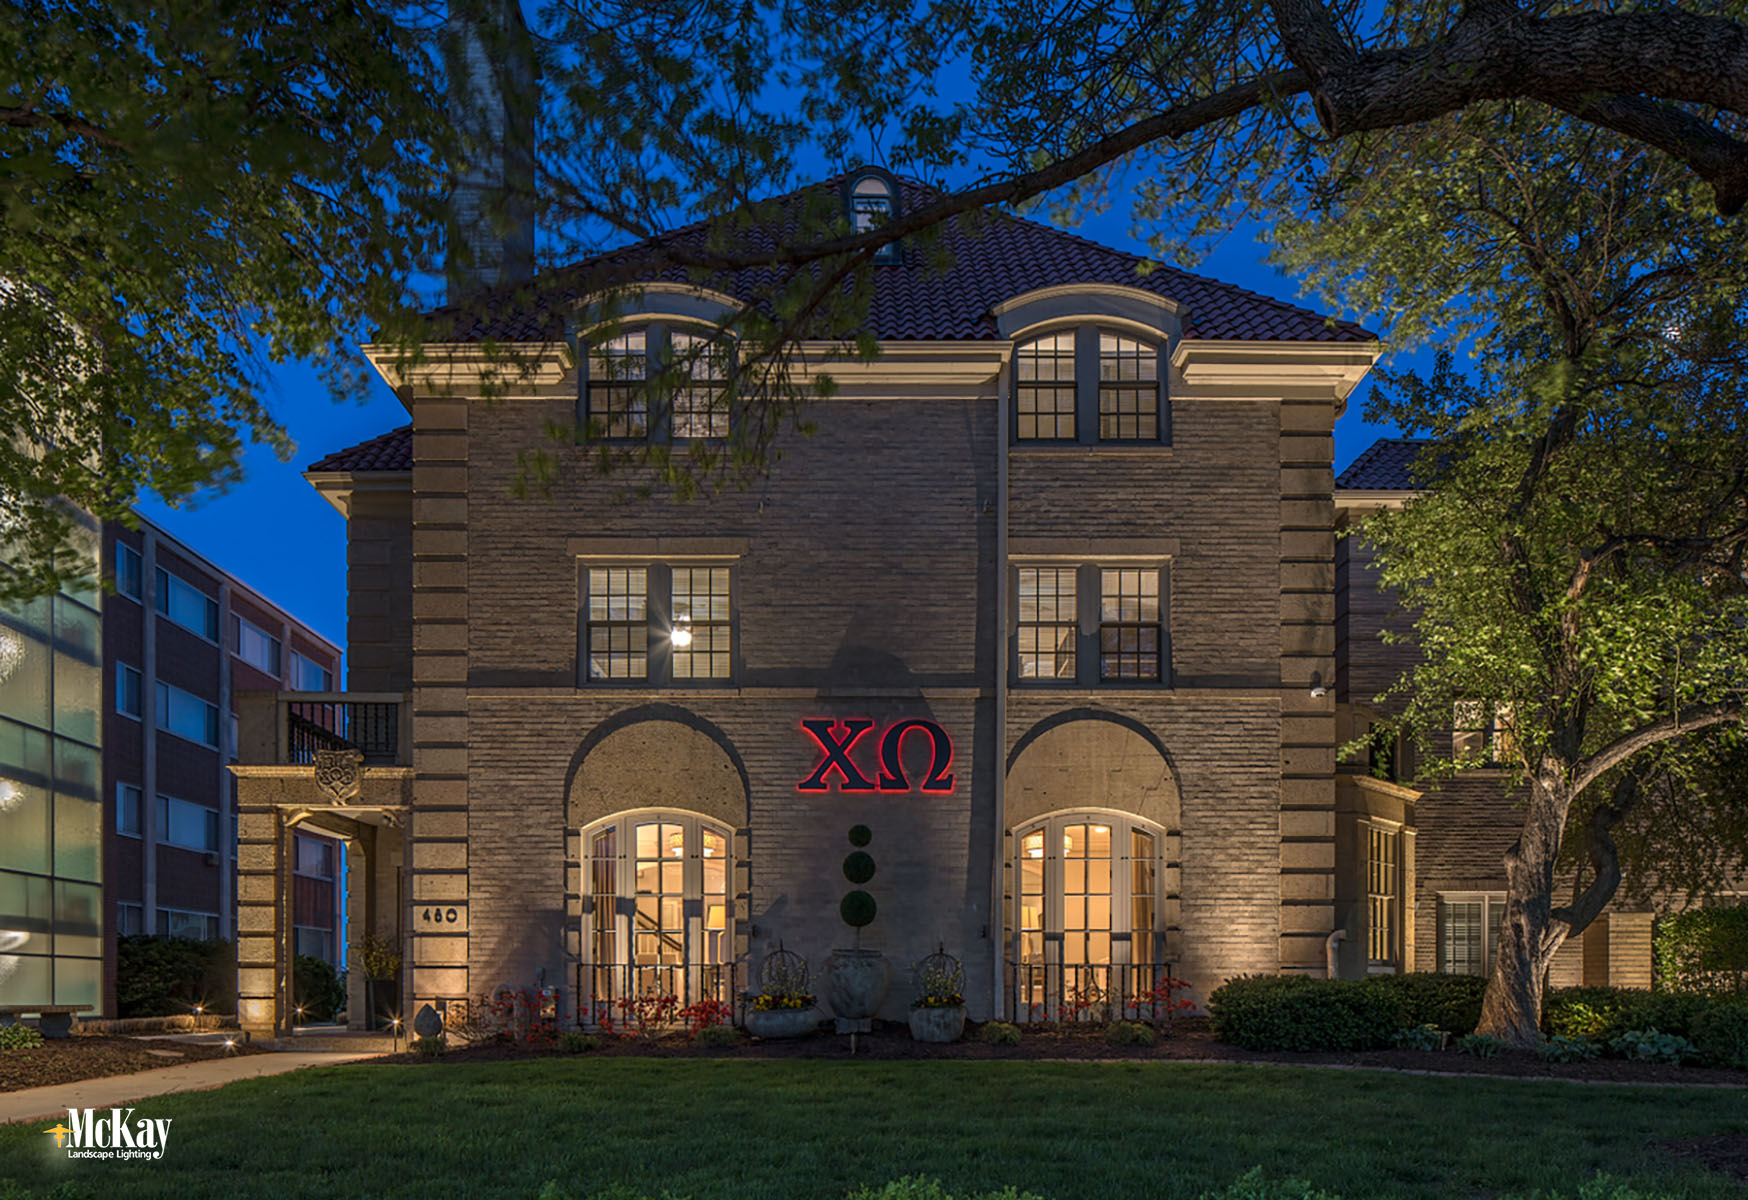 College Sorority Architectural Lighting Lincoln Nebraska McKay Landscape Lighting CHI 03